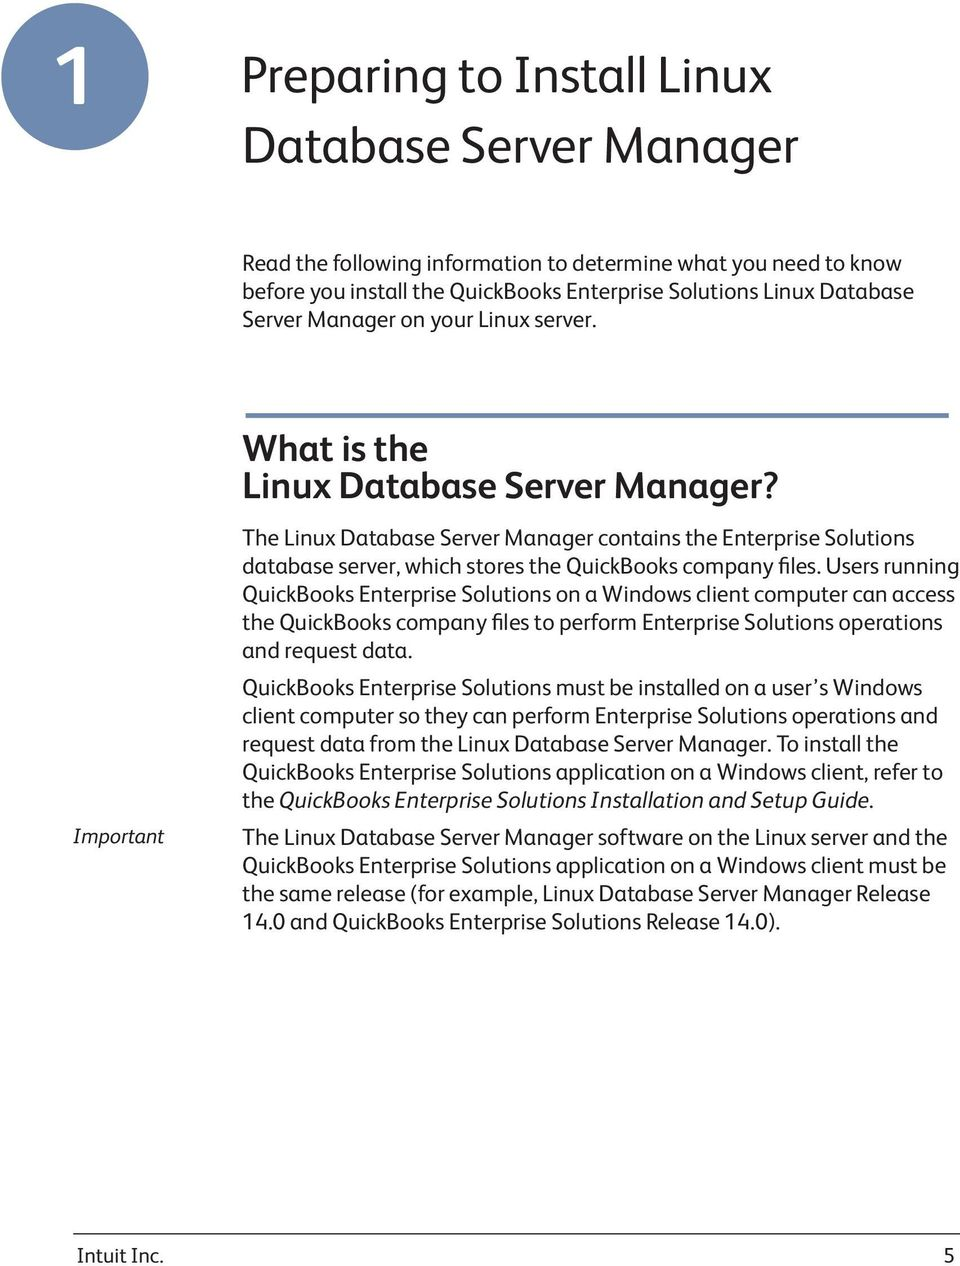 Important The Linux Database Server Manager contains the Enterprise Solutions database server, which stores the QuickBooks company files.